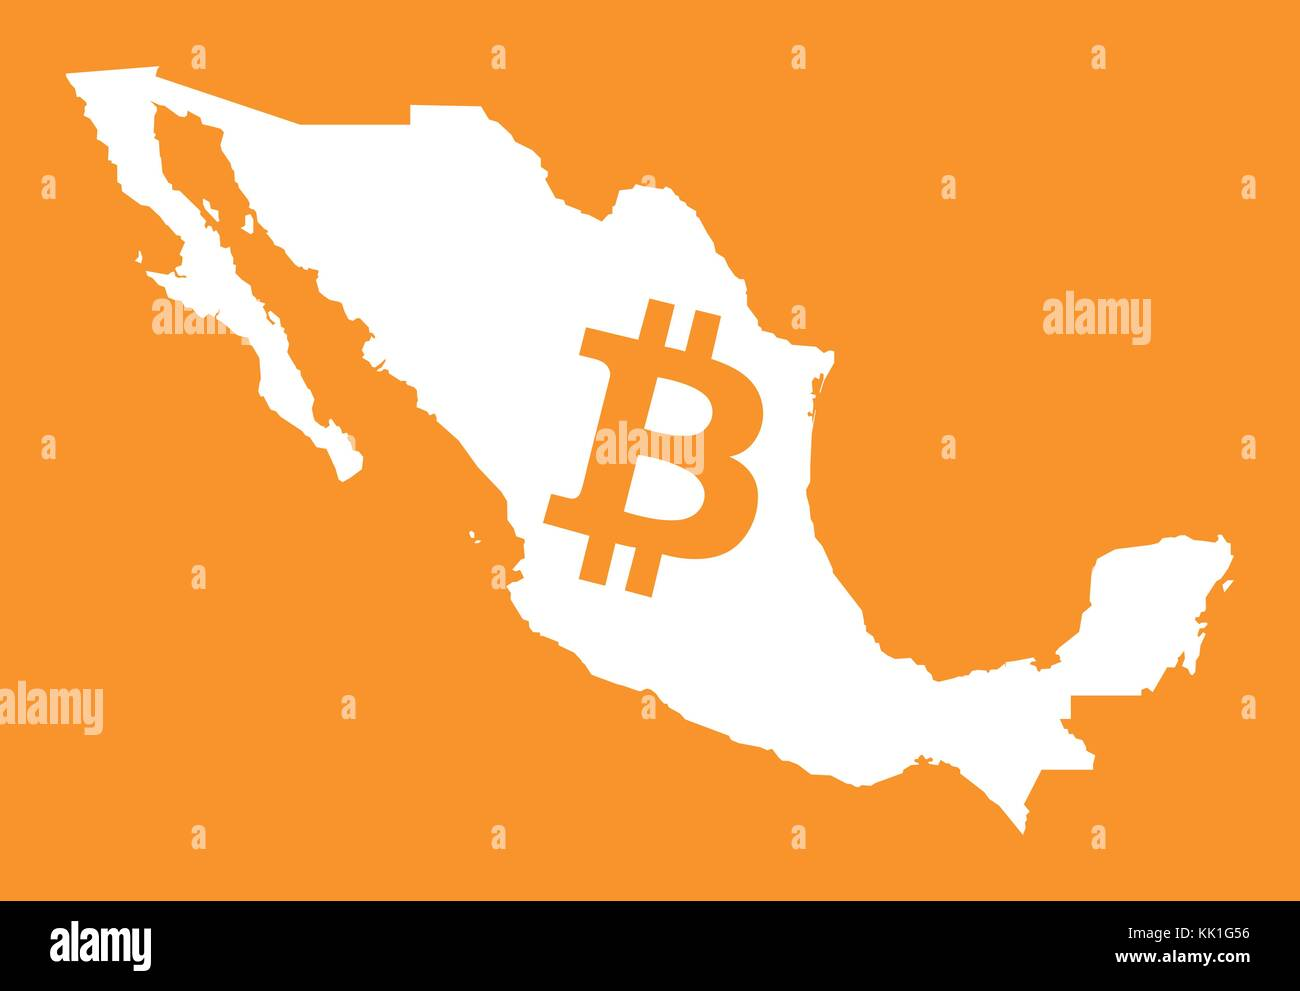 Bank of mexico sign stock photos bank of mexico sign stock mexico map with bitcoin crypto currency symbol illustration stock image biocorpaavc